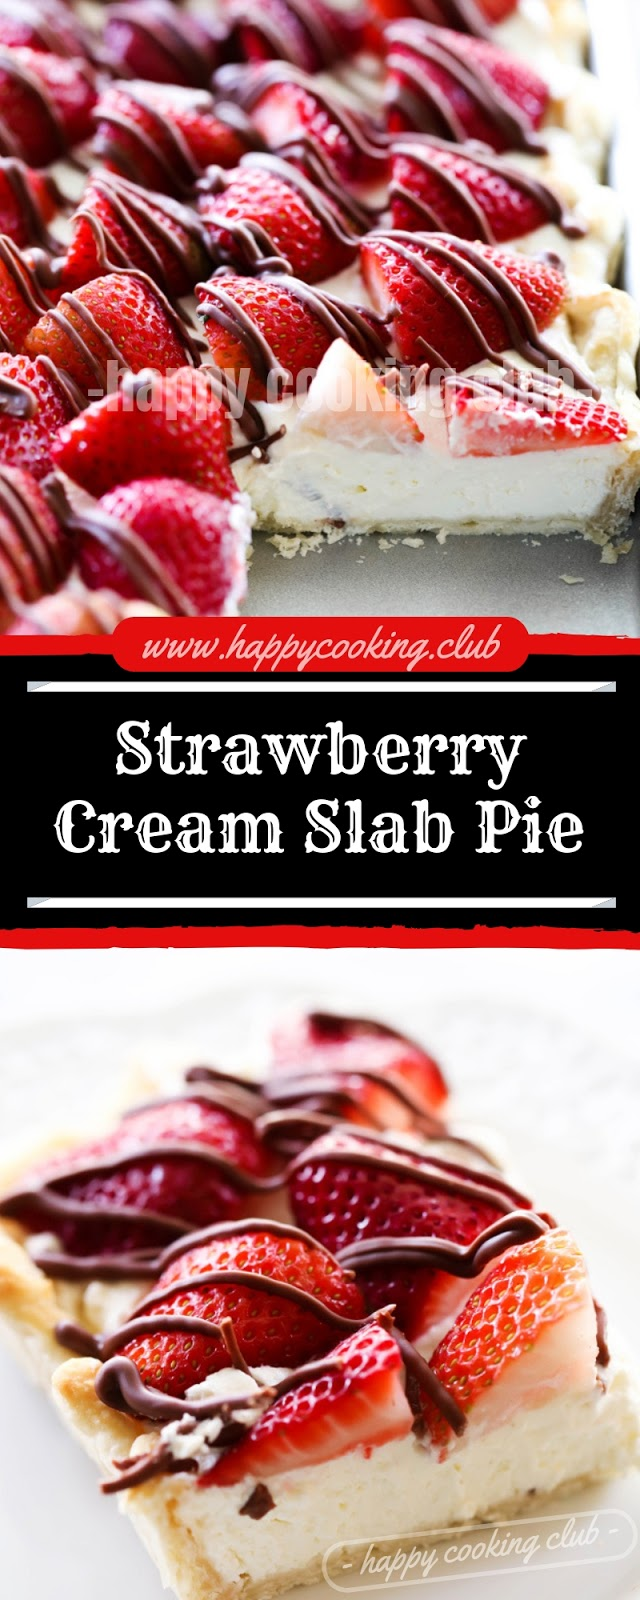 Strawberry Cream Slab Pie